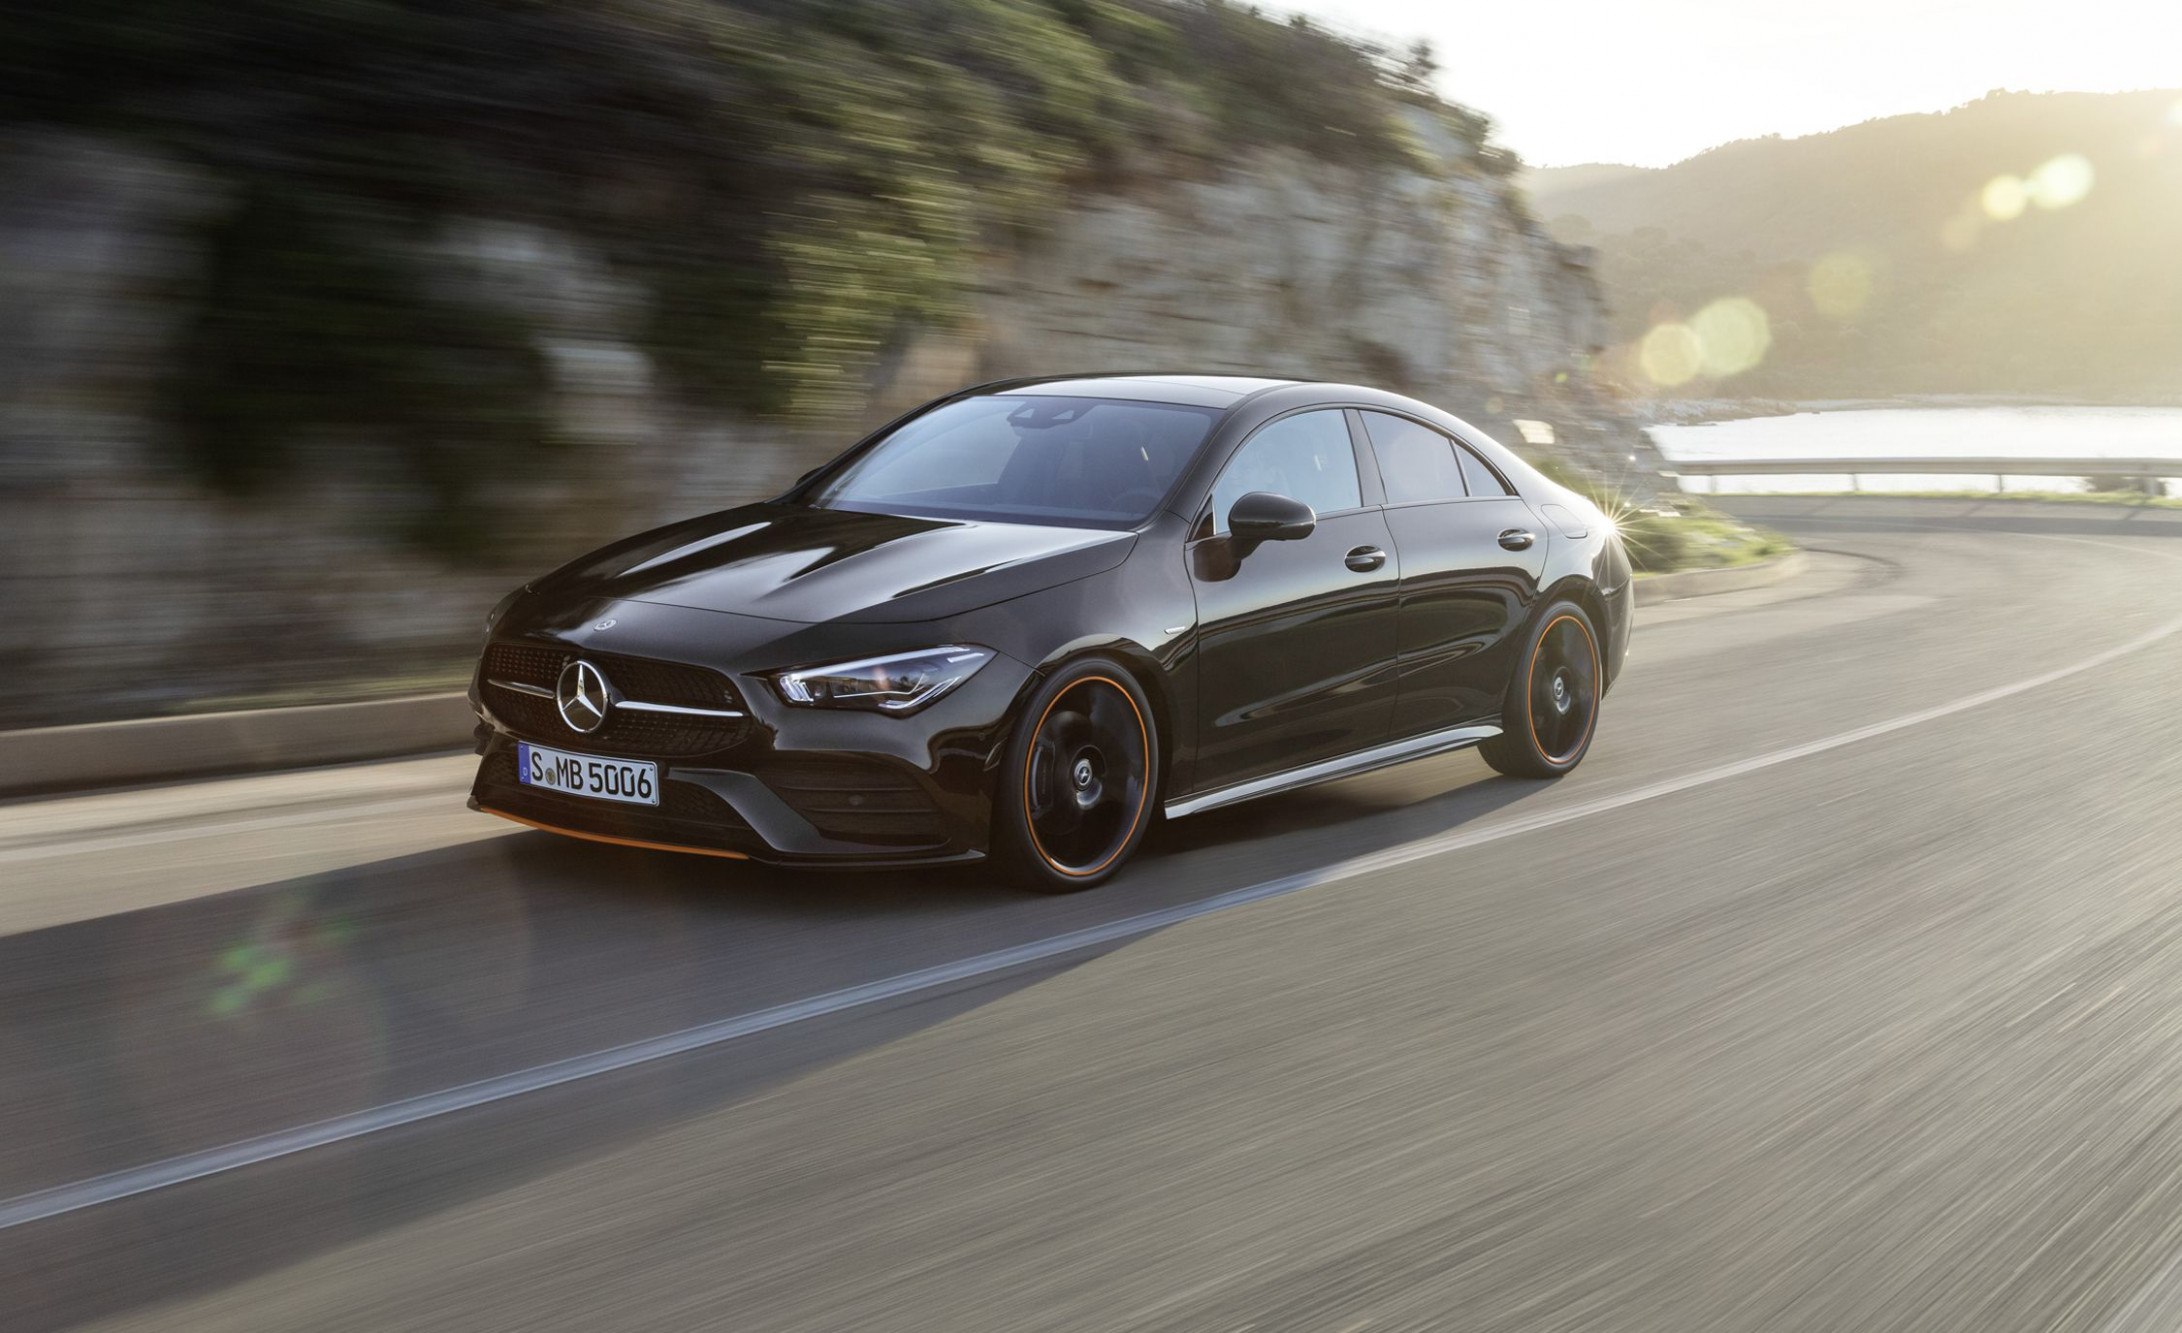 8 Mercedes-Benz CLA - New Compact Four-Door Coupe